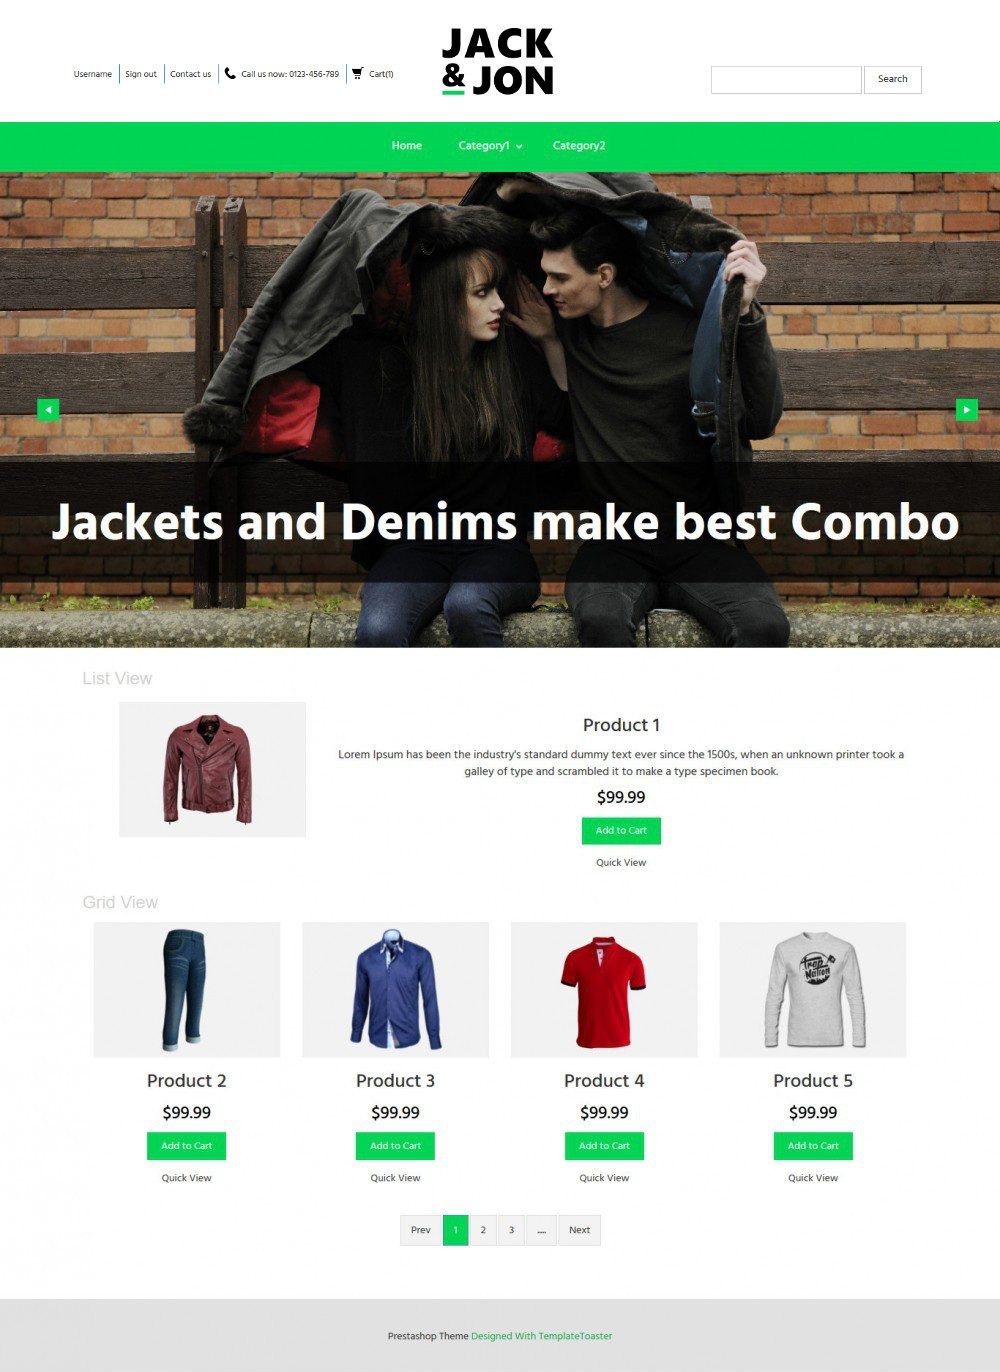 Jack & Jon Clothing Virtuemart Template